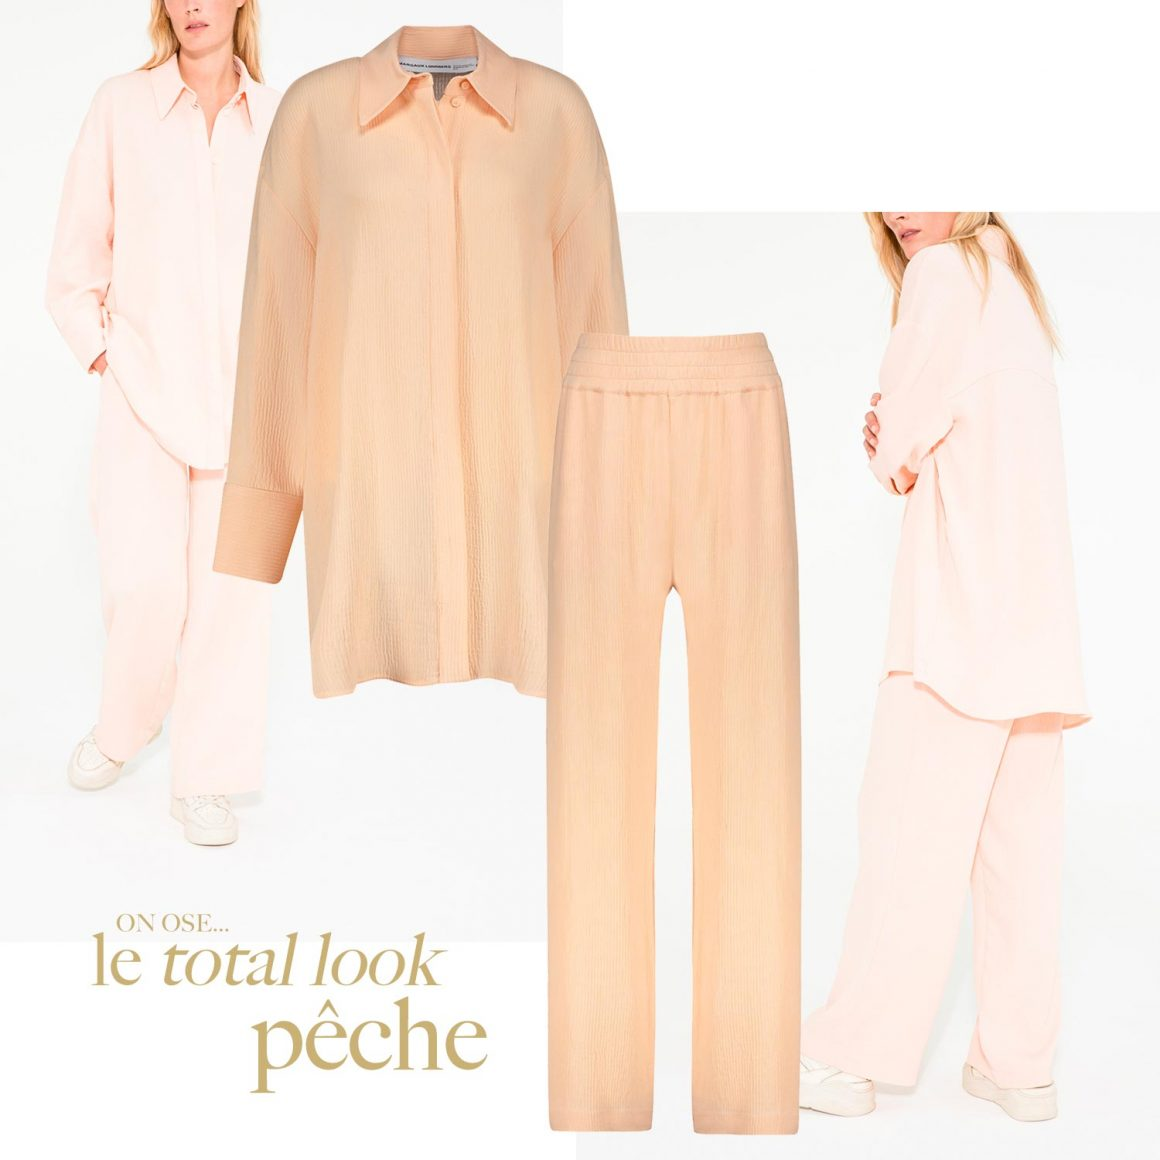 On ose le total look pêche avec Margaux Lonnberg